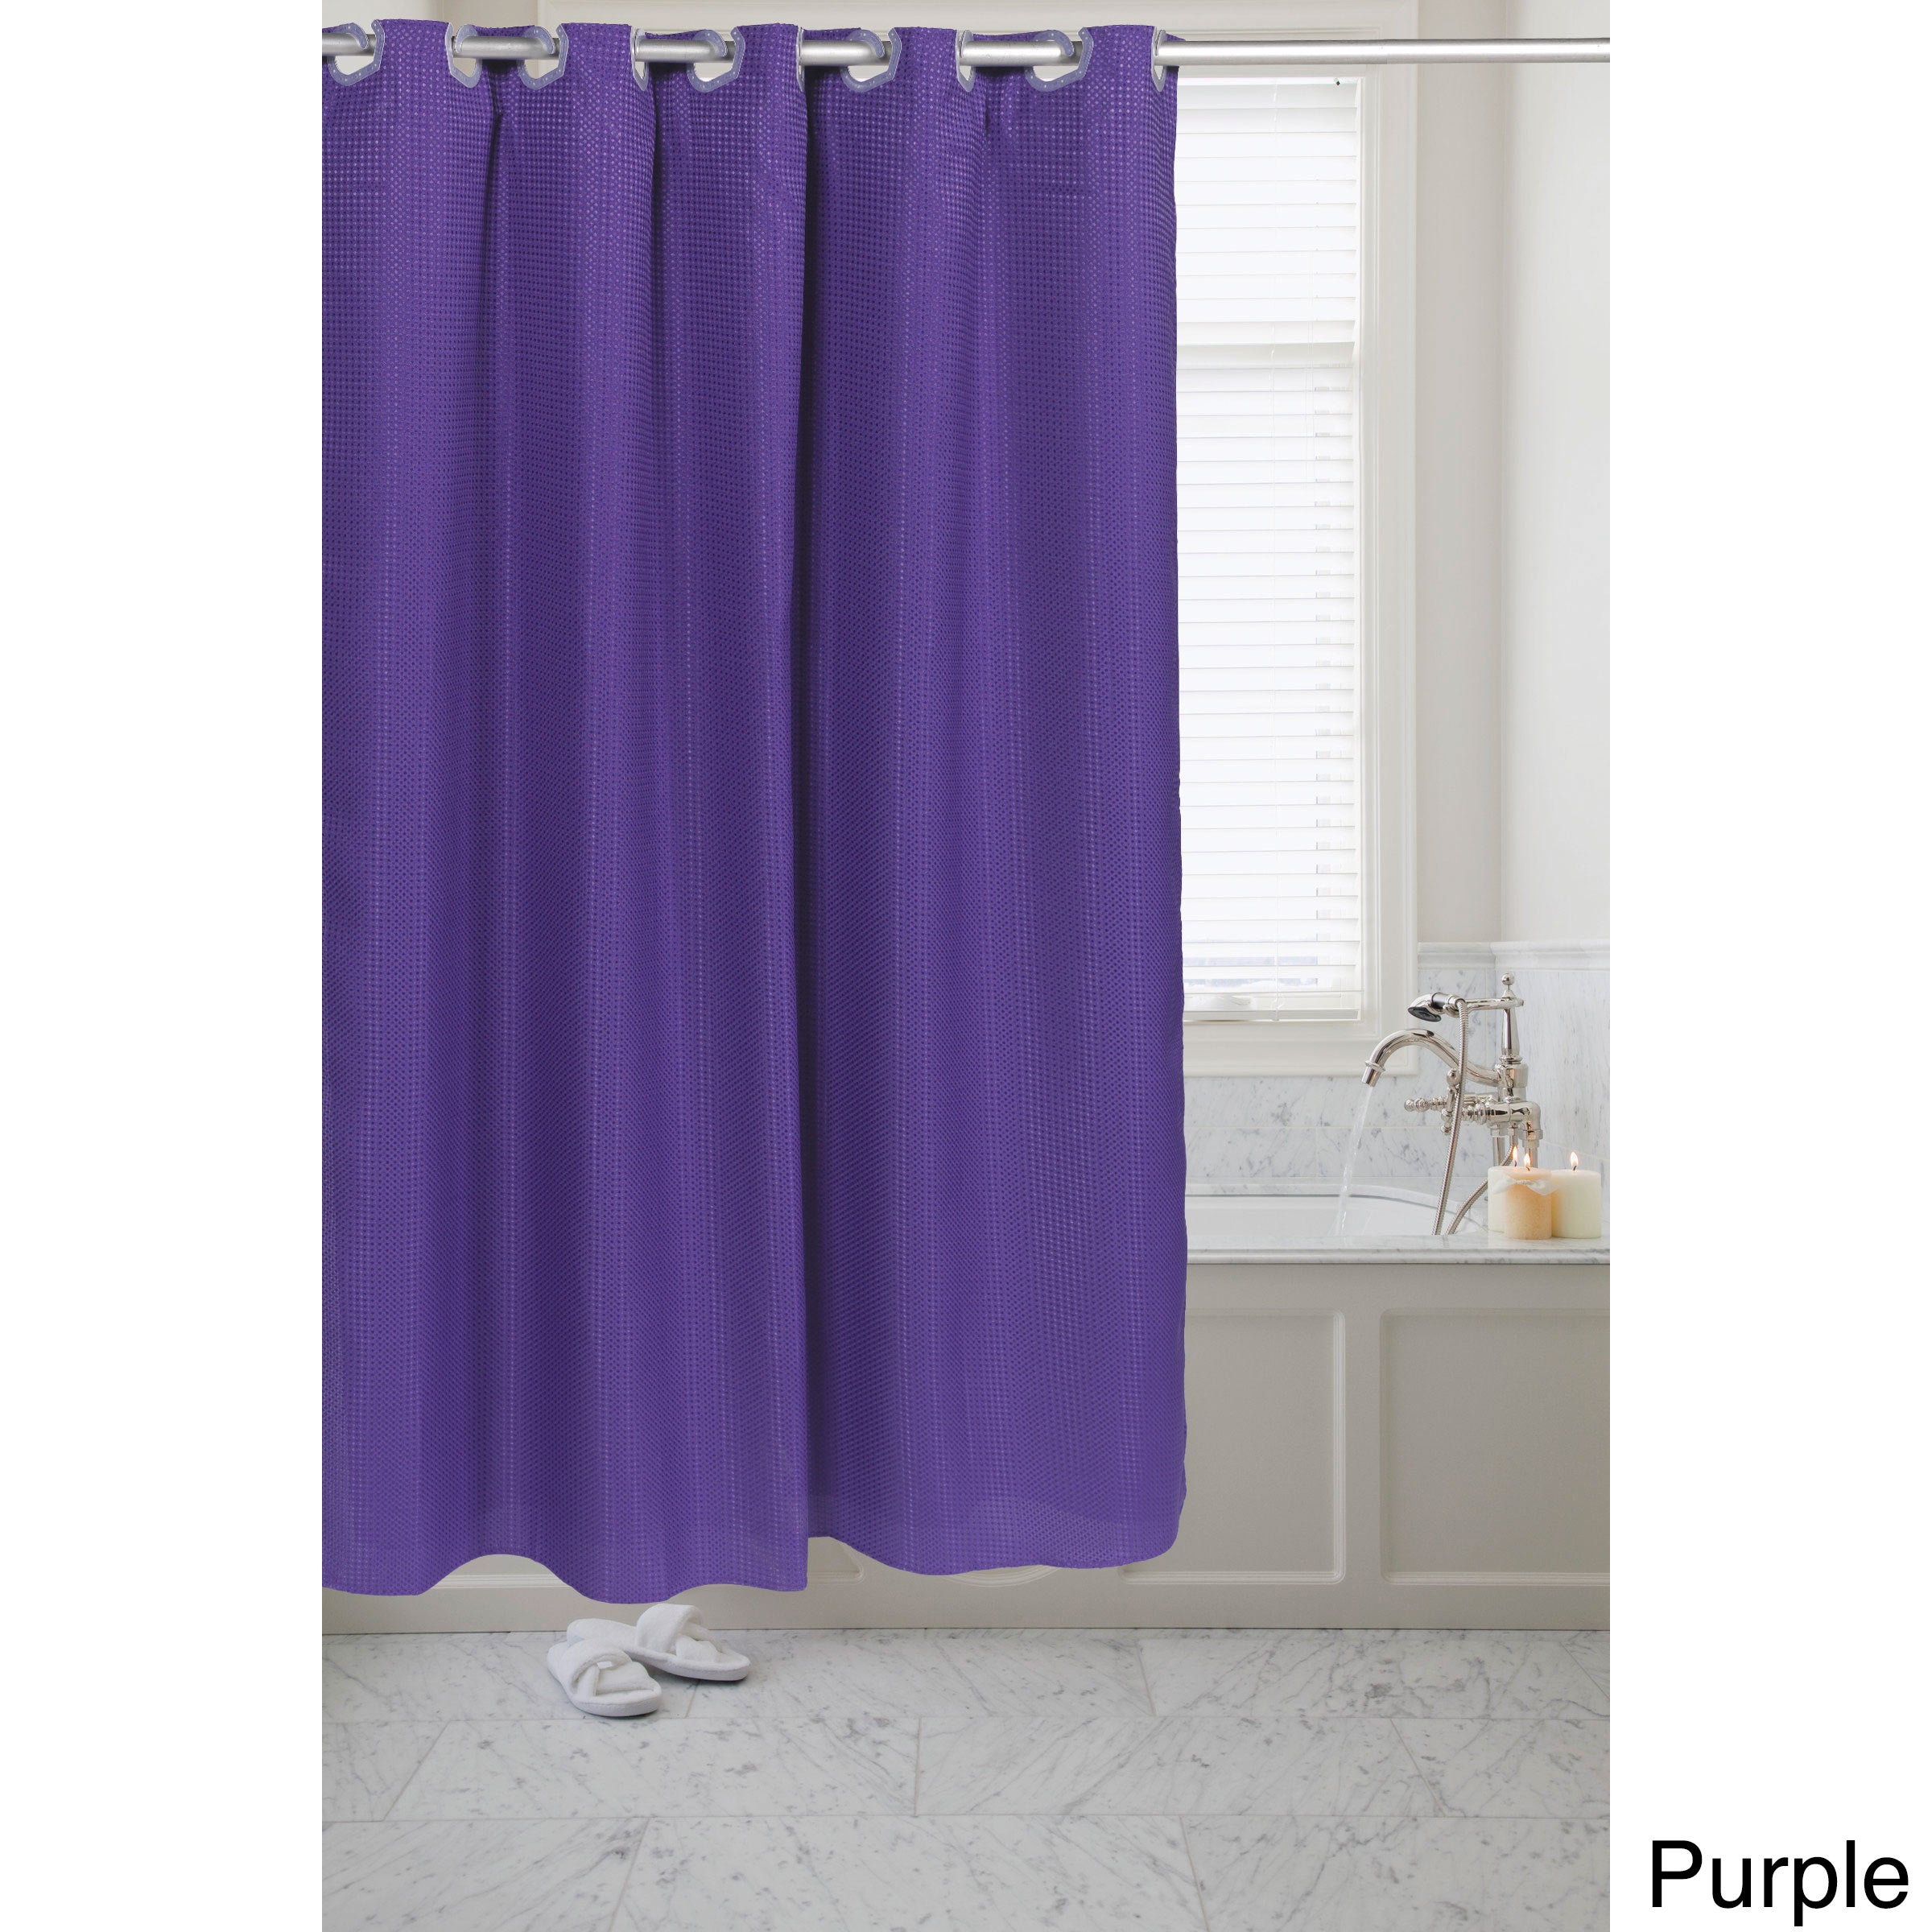 Waffle Weave Fabric Pre-hooked Shower Curtain - Free Shipping On ...